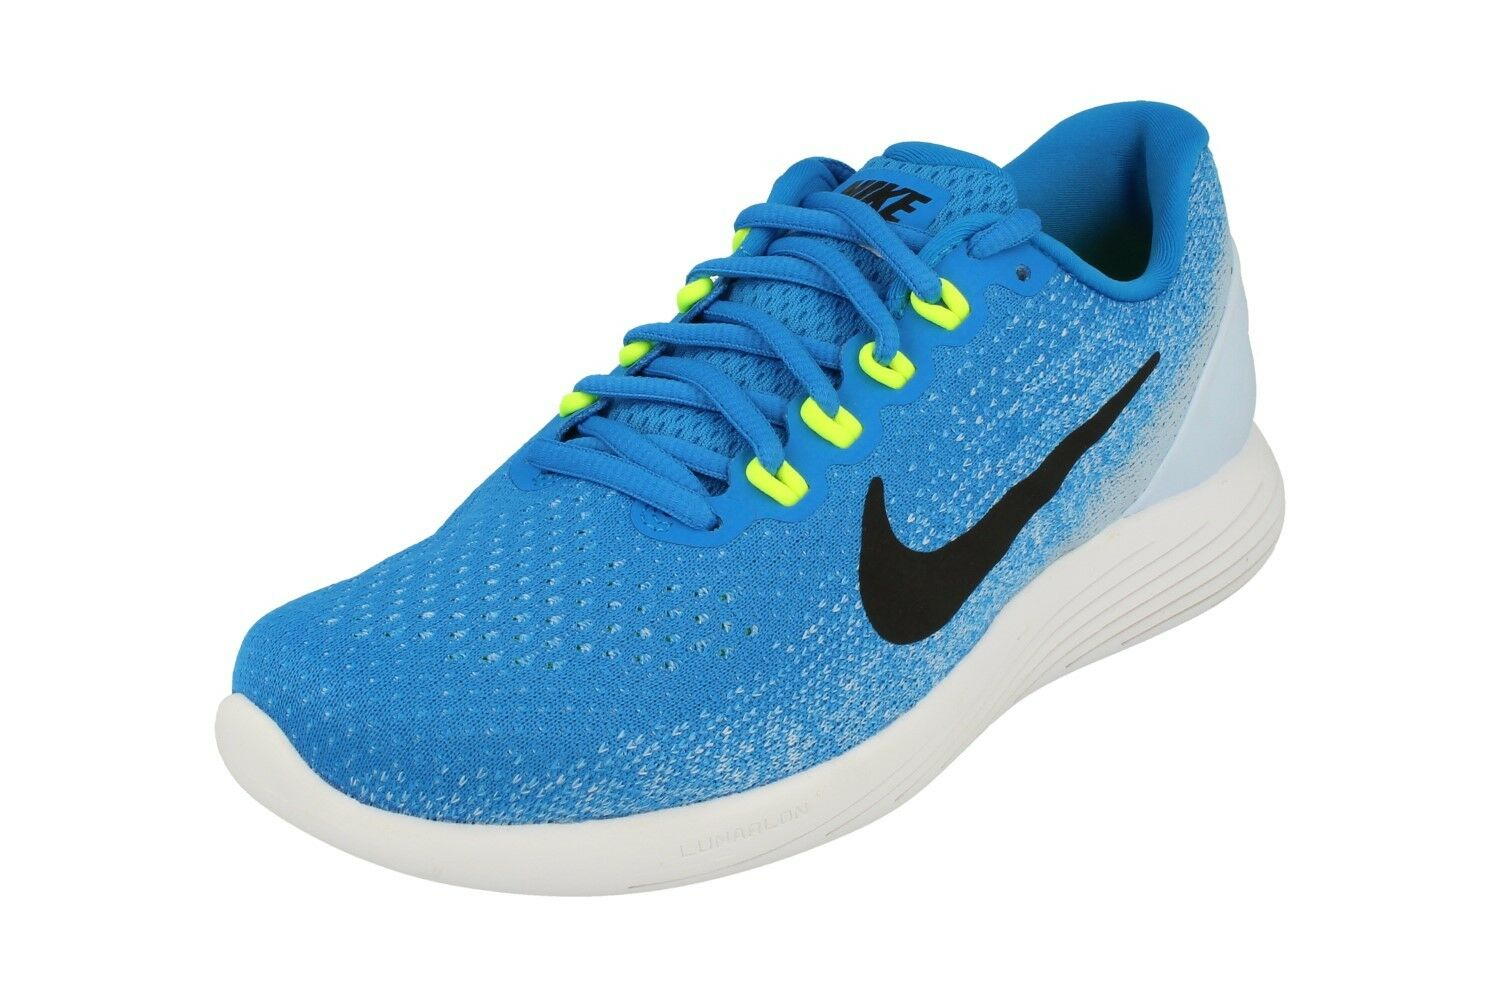 Nike Lunarglide 9 Mens Running Trainers 904715 Sneakers Shoes 401